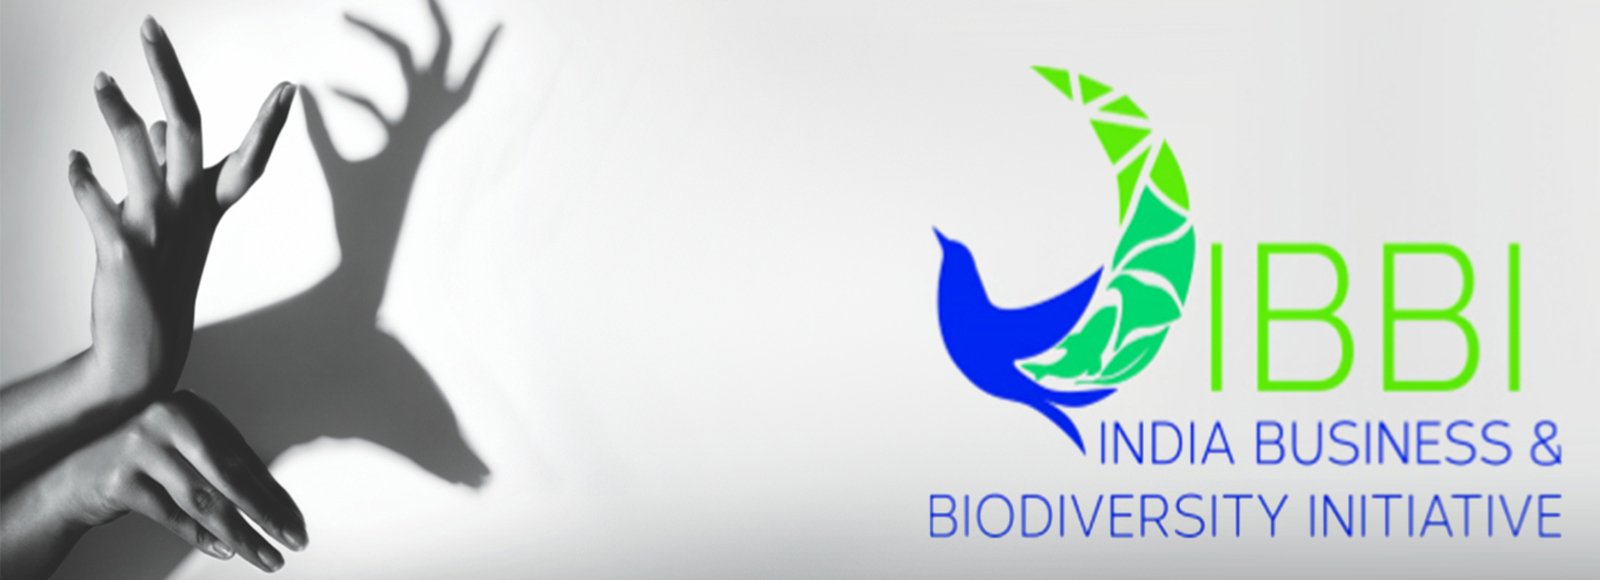 Indian Business and Biodiversity Initiative (IBBI)